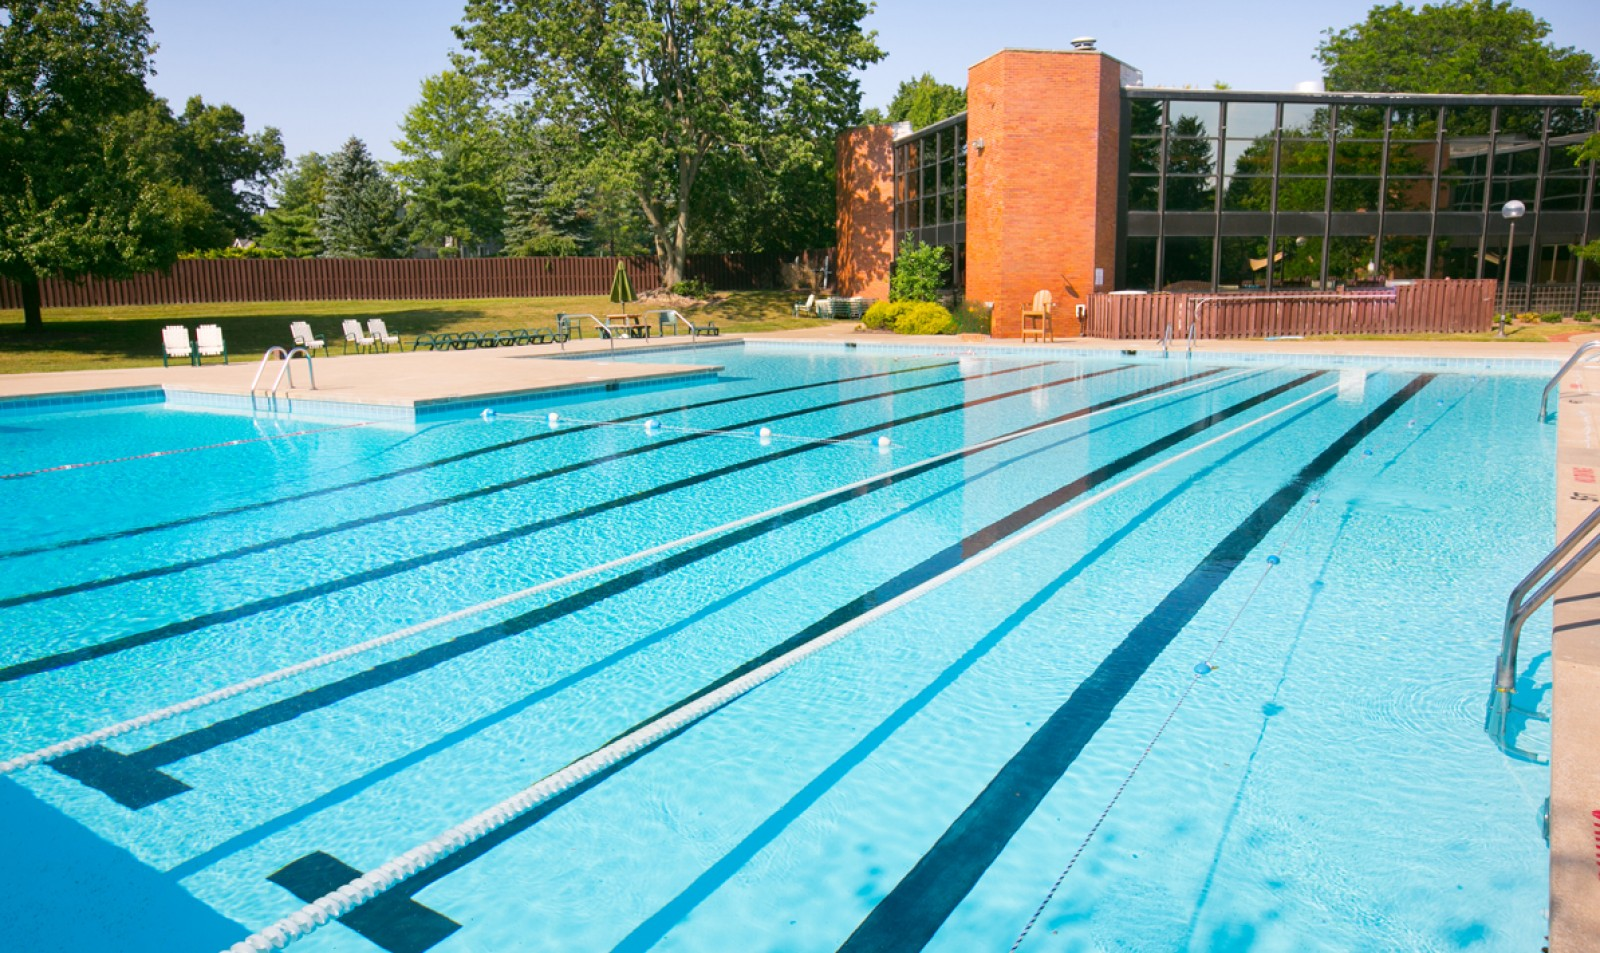 Relax at one of our two outdoor swimming pools with poolside WiFi at Williamsburg Townhomes Rental Homes in Sagamore Hills, OH